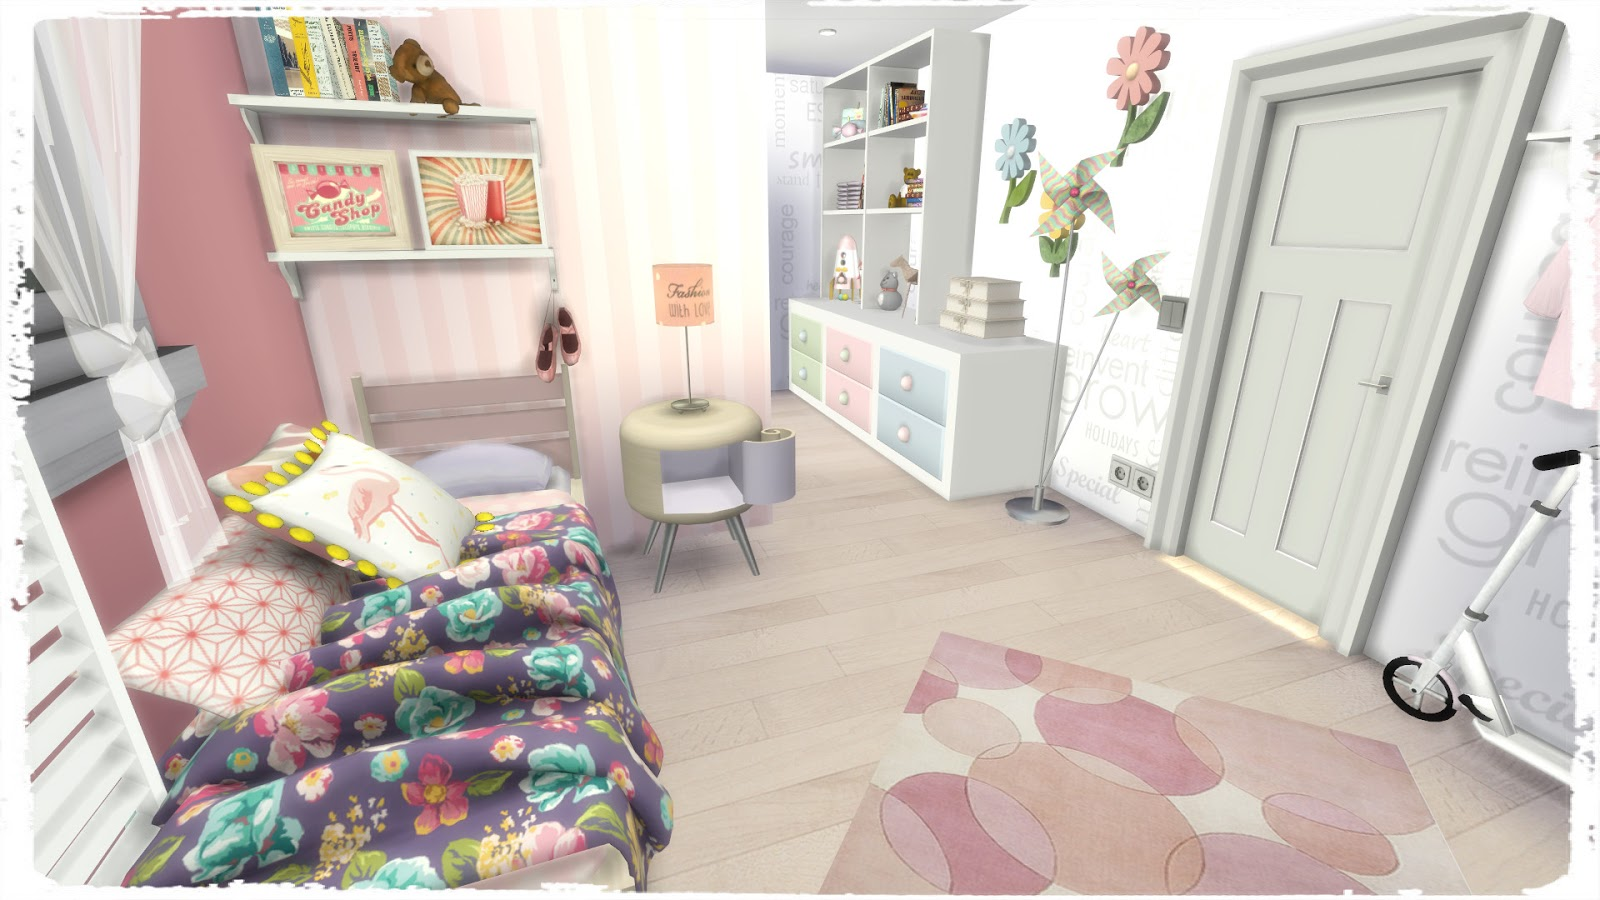 Sims 4   Girls Bedroom (Room + Mods For Download)